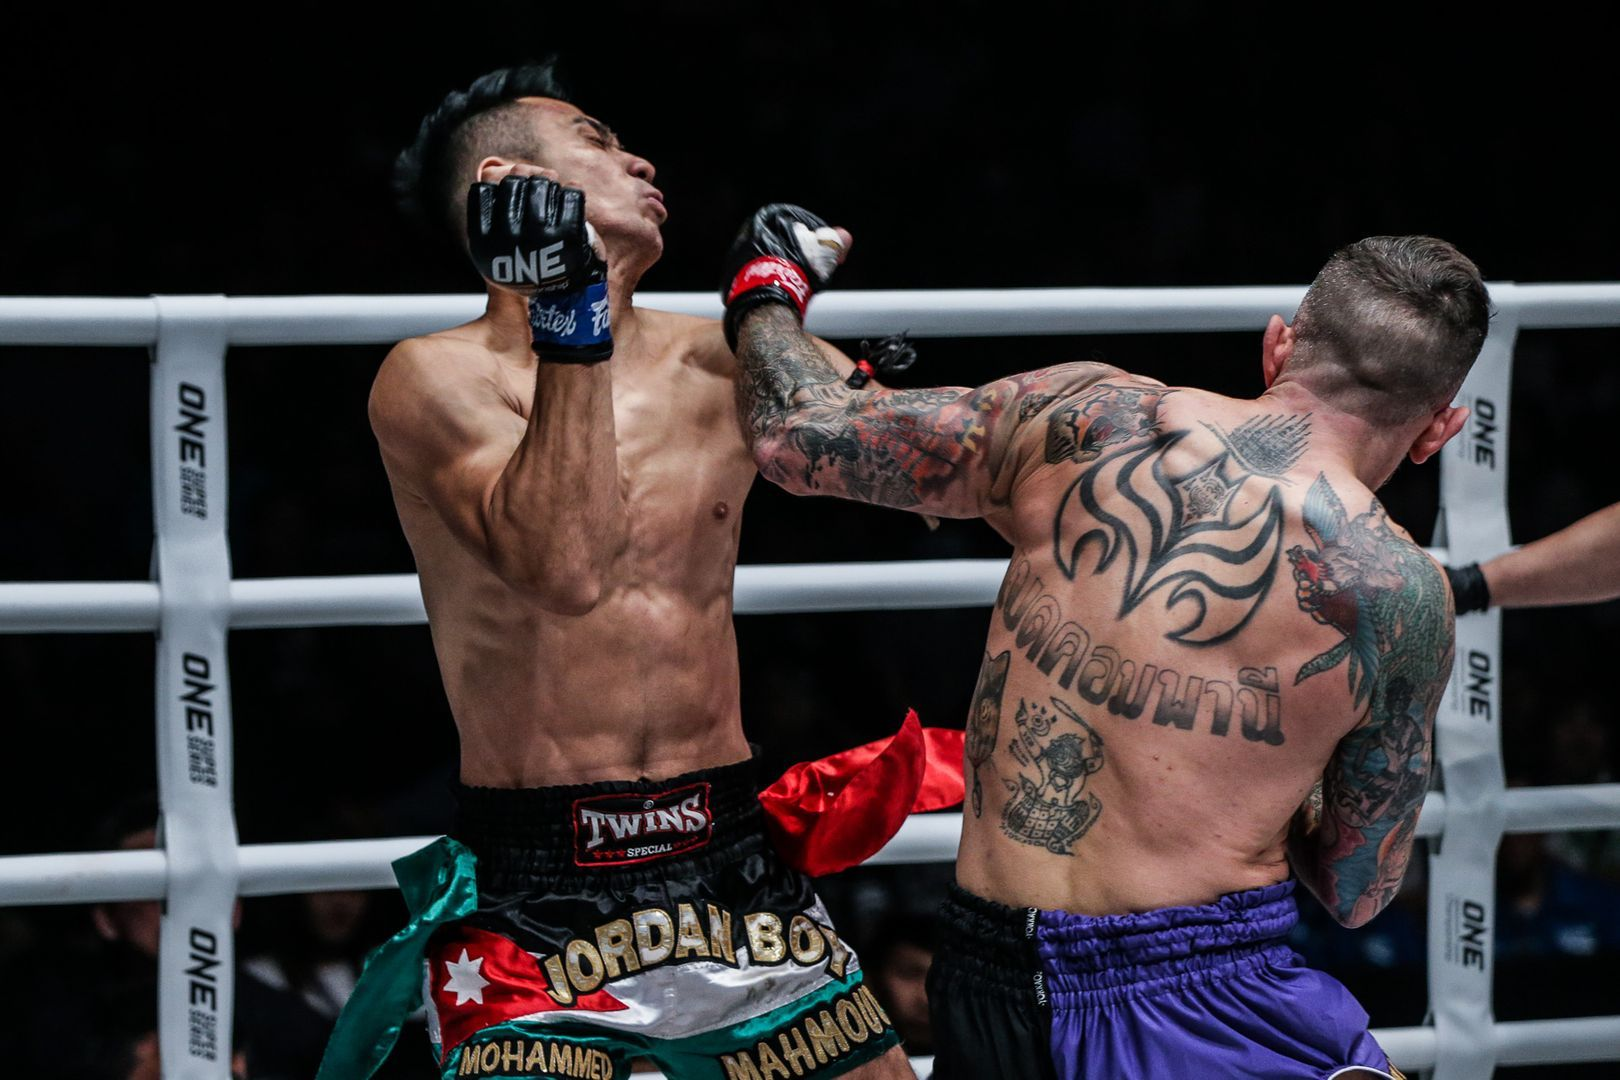 Liam Harrison defeats Mohammed Bin Mahmoud at ONE A NEW TOMORROW in Bangkok